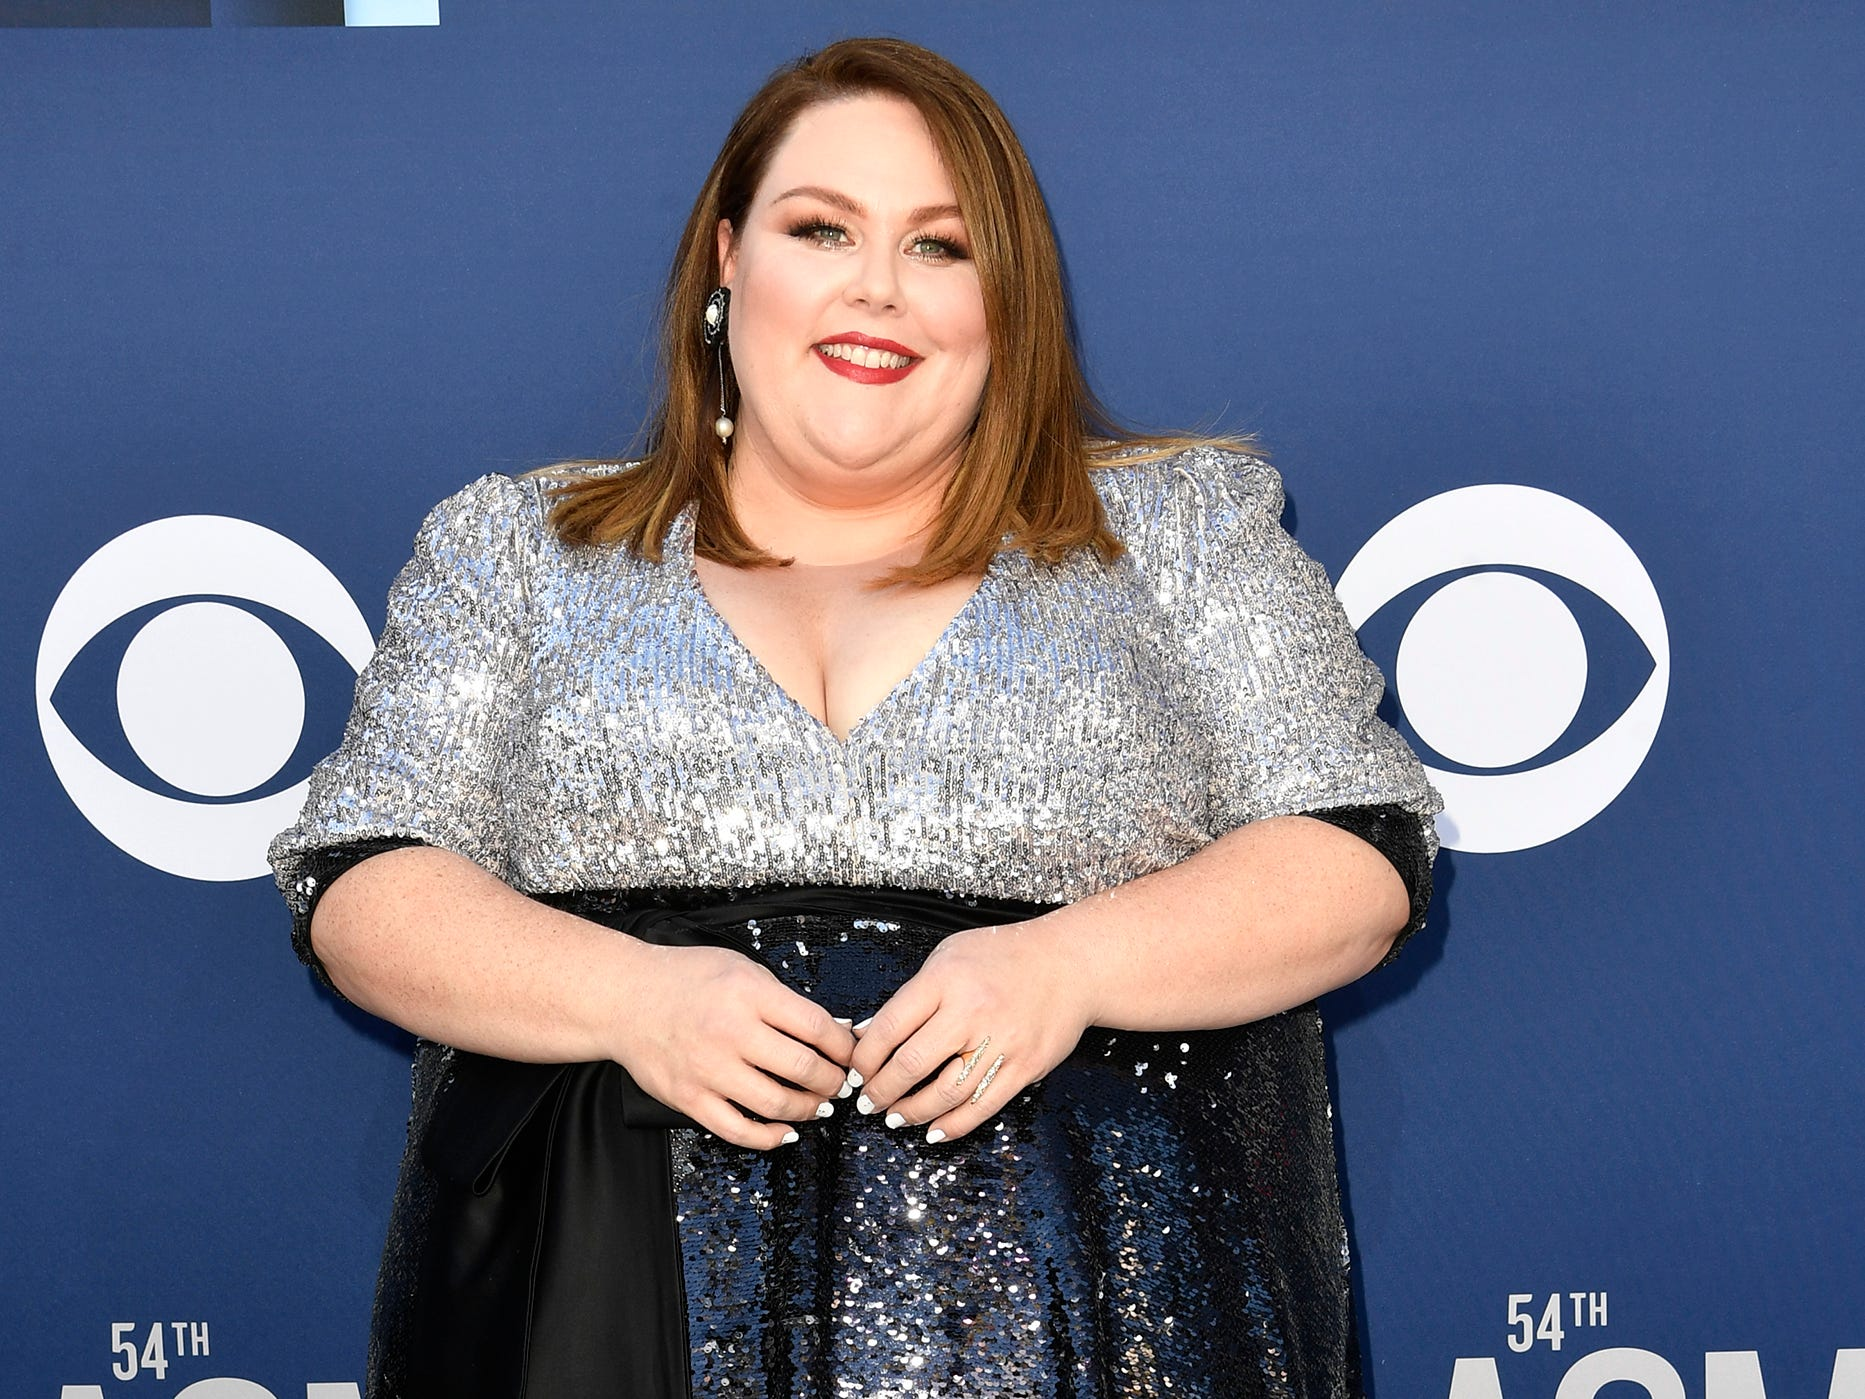 Chrissy Metz walks the red carpet at the 54TH Academy of Country Music Awards Sunday, April 7, 2019, in Las Vegas, Nev.